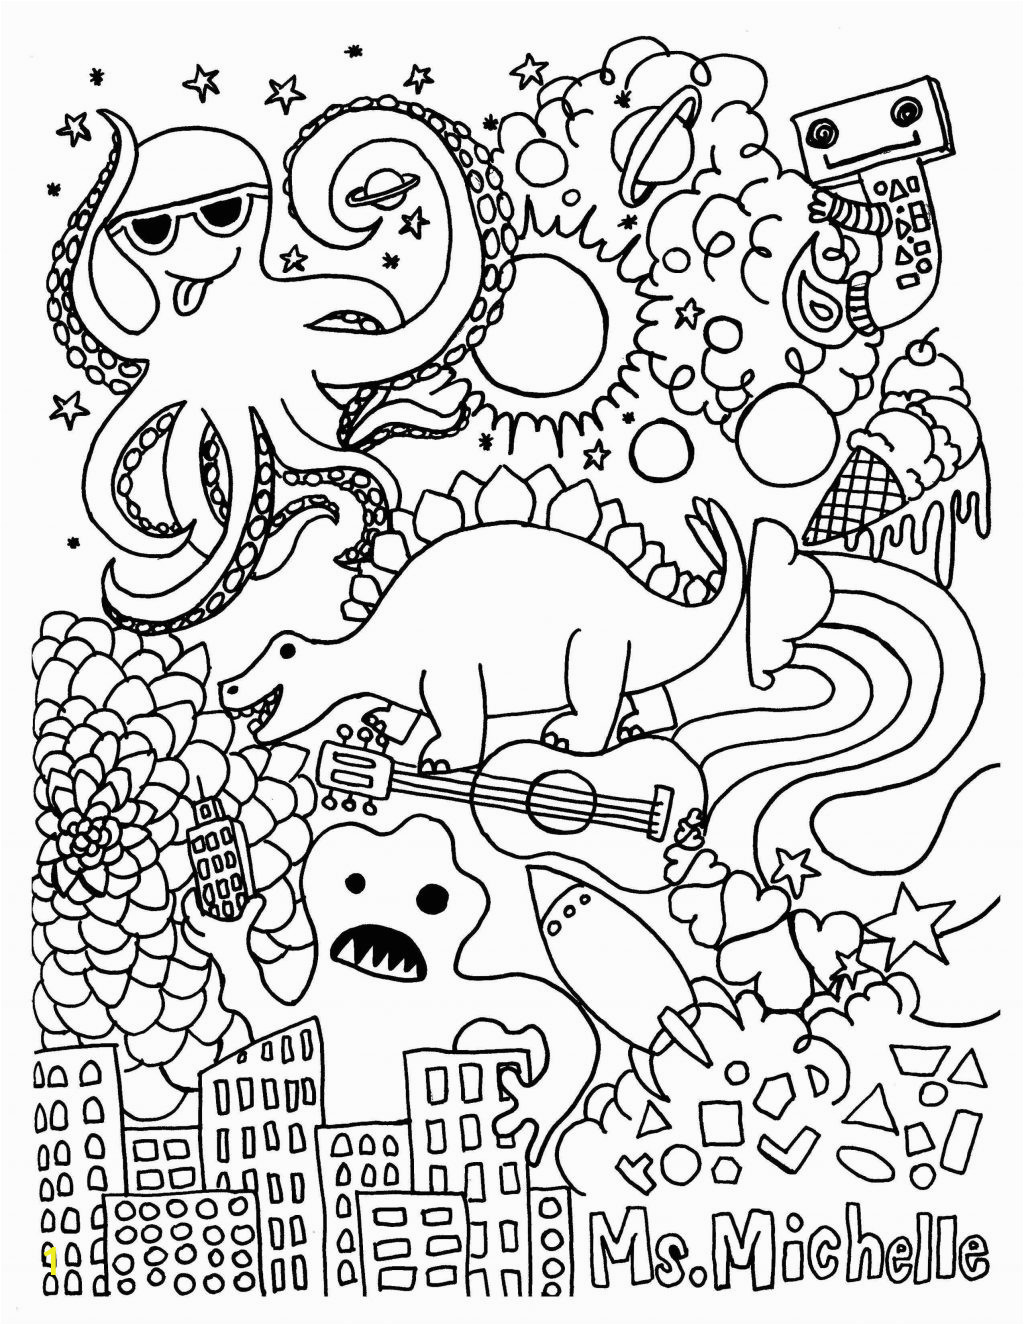 coloring pages ideas jesuslms the storm page for preschool winter adults craft kids peace still google docs 1024x1325